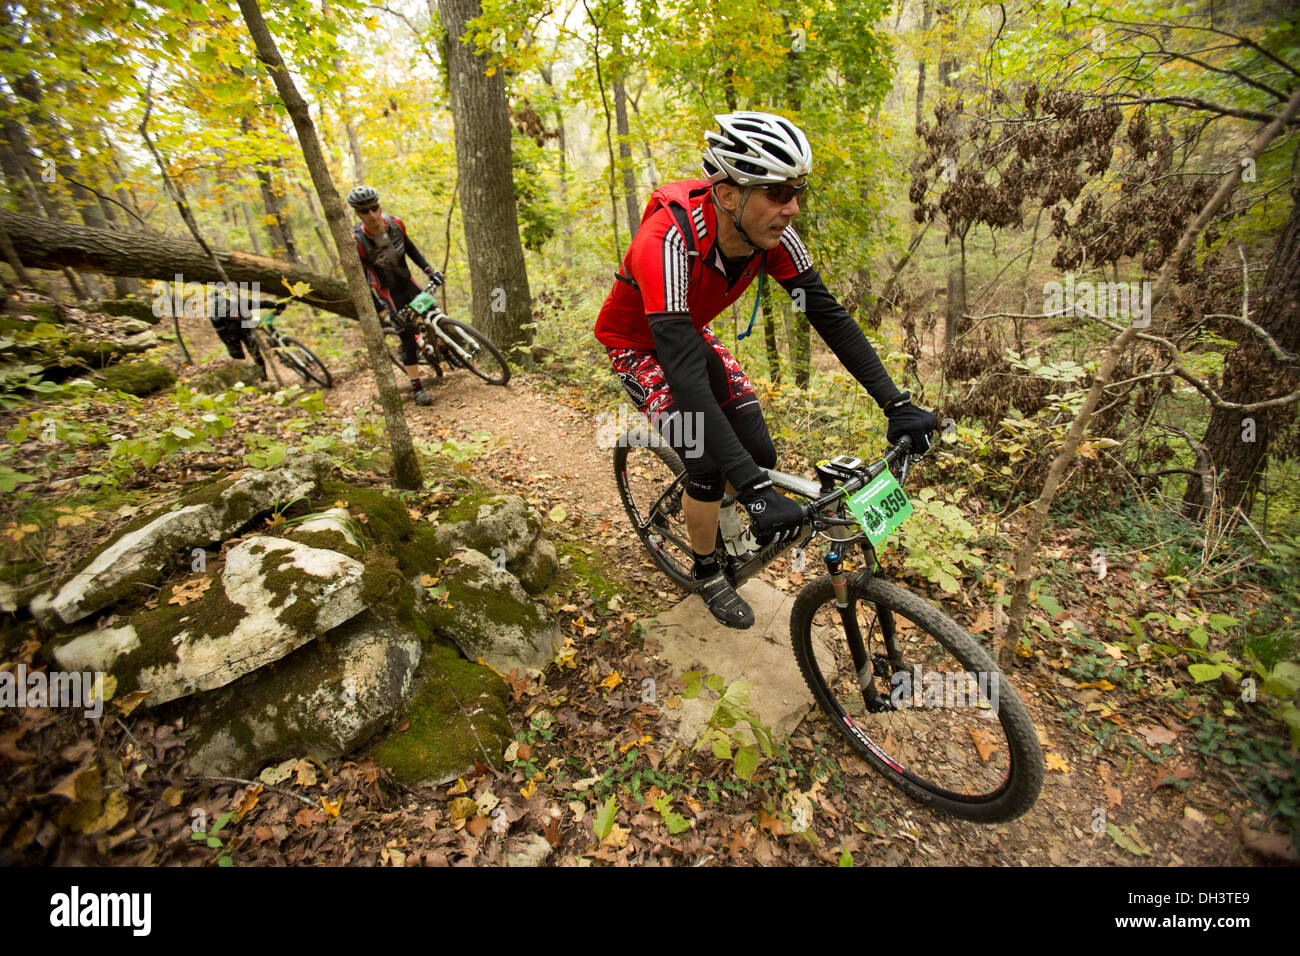 Mountain bikers ride along a forest trail system at Blowing Springs Park in Bella Vista, Arkansas. Stock Photo